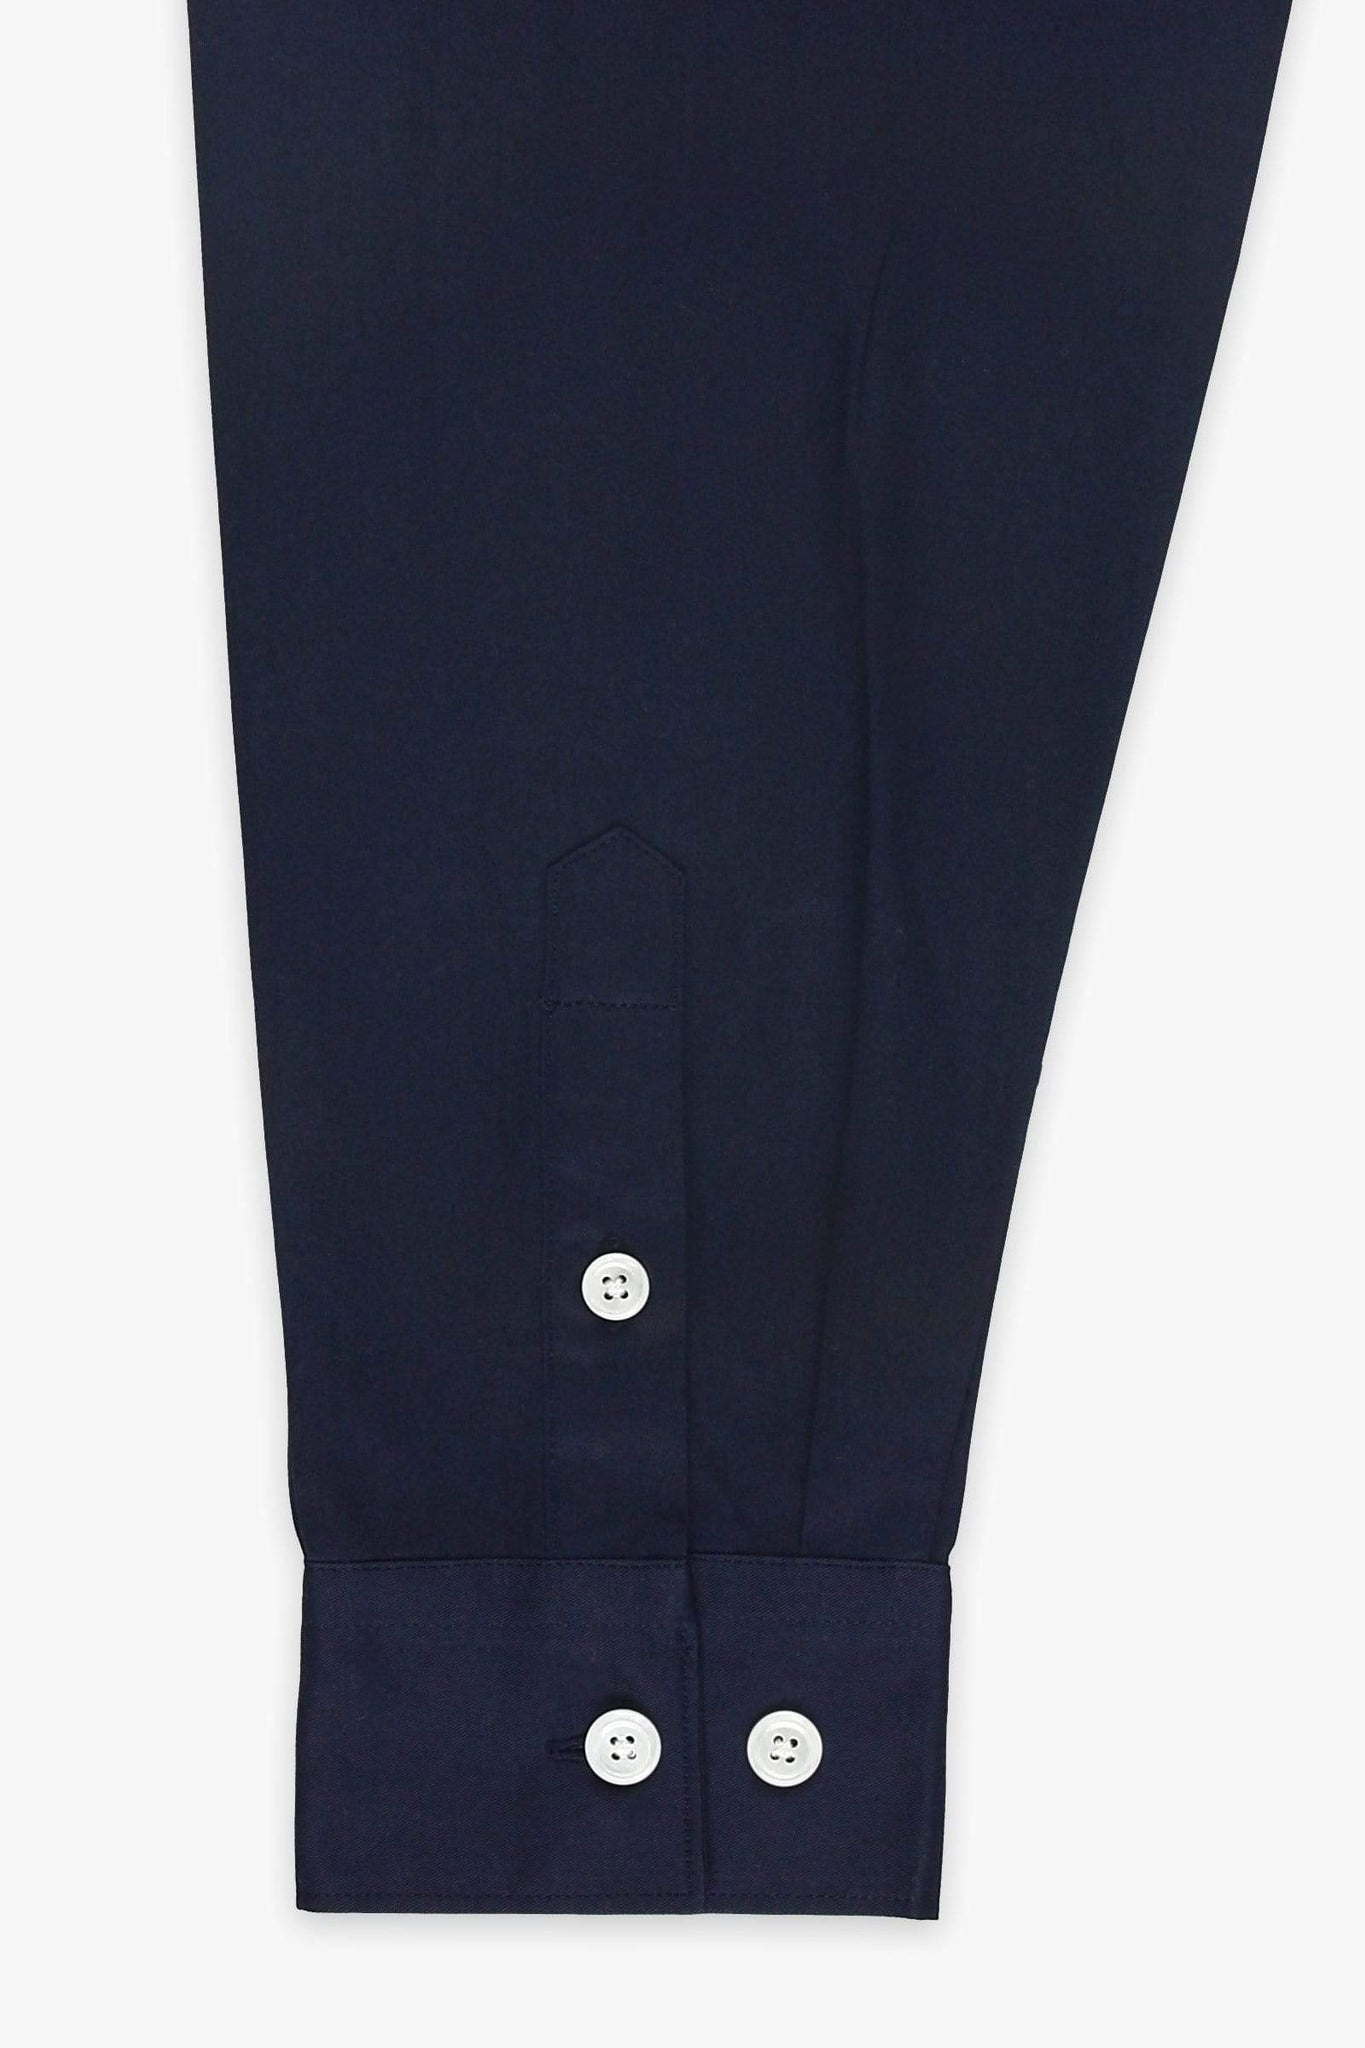 Pocket - Navy